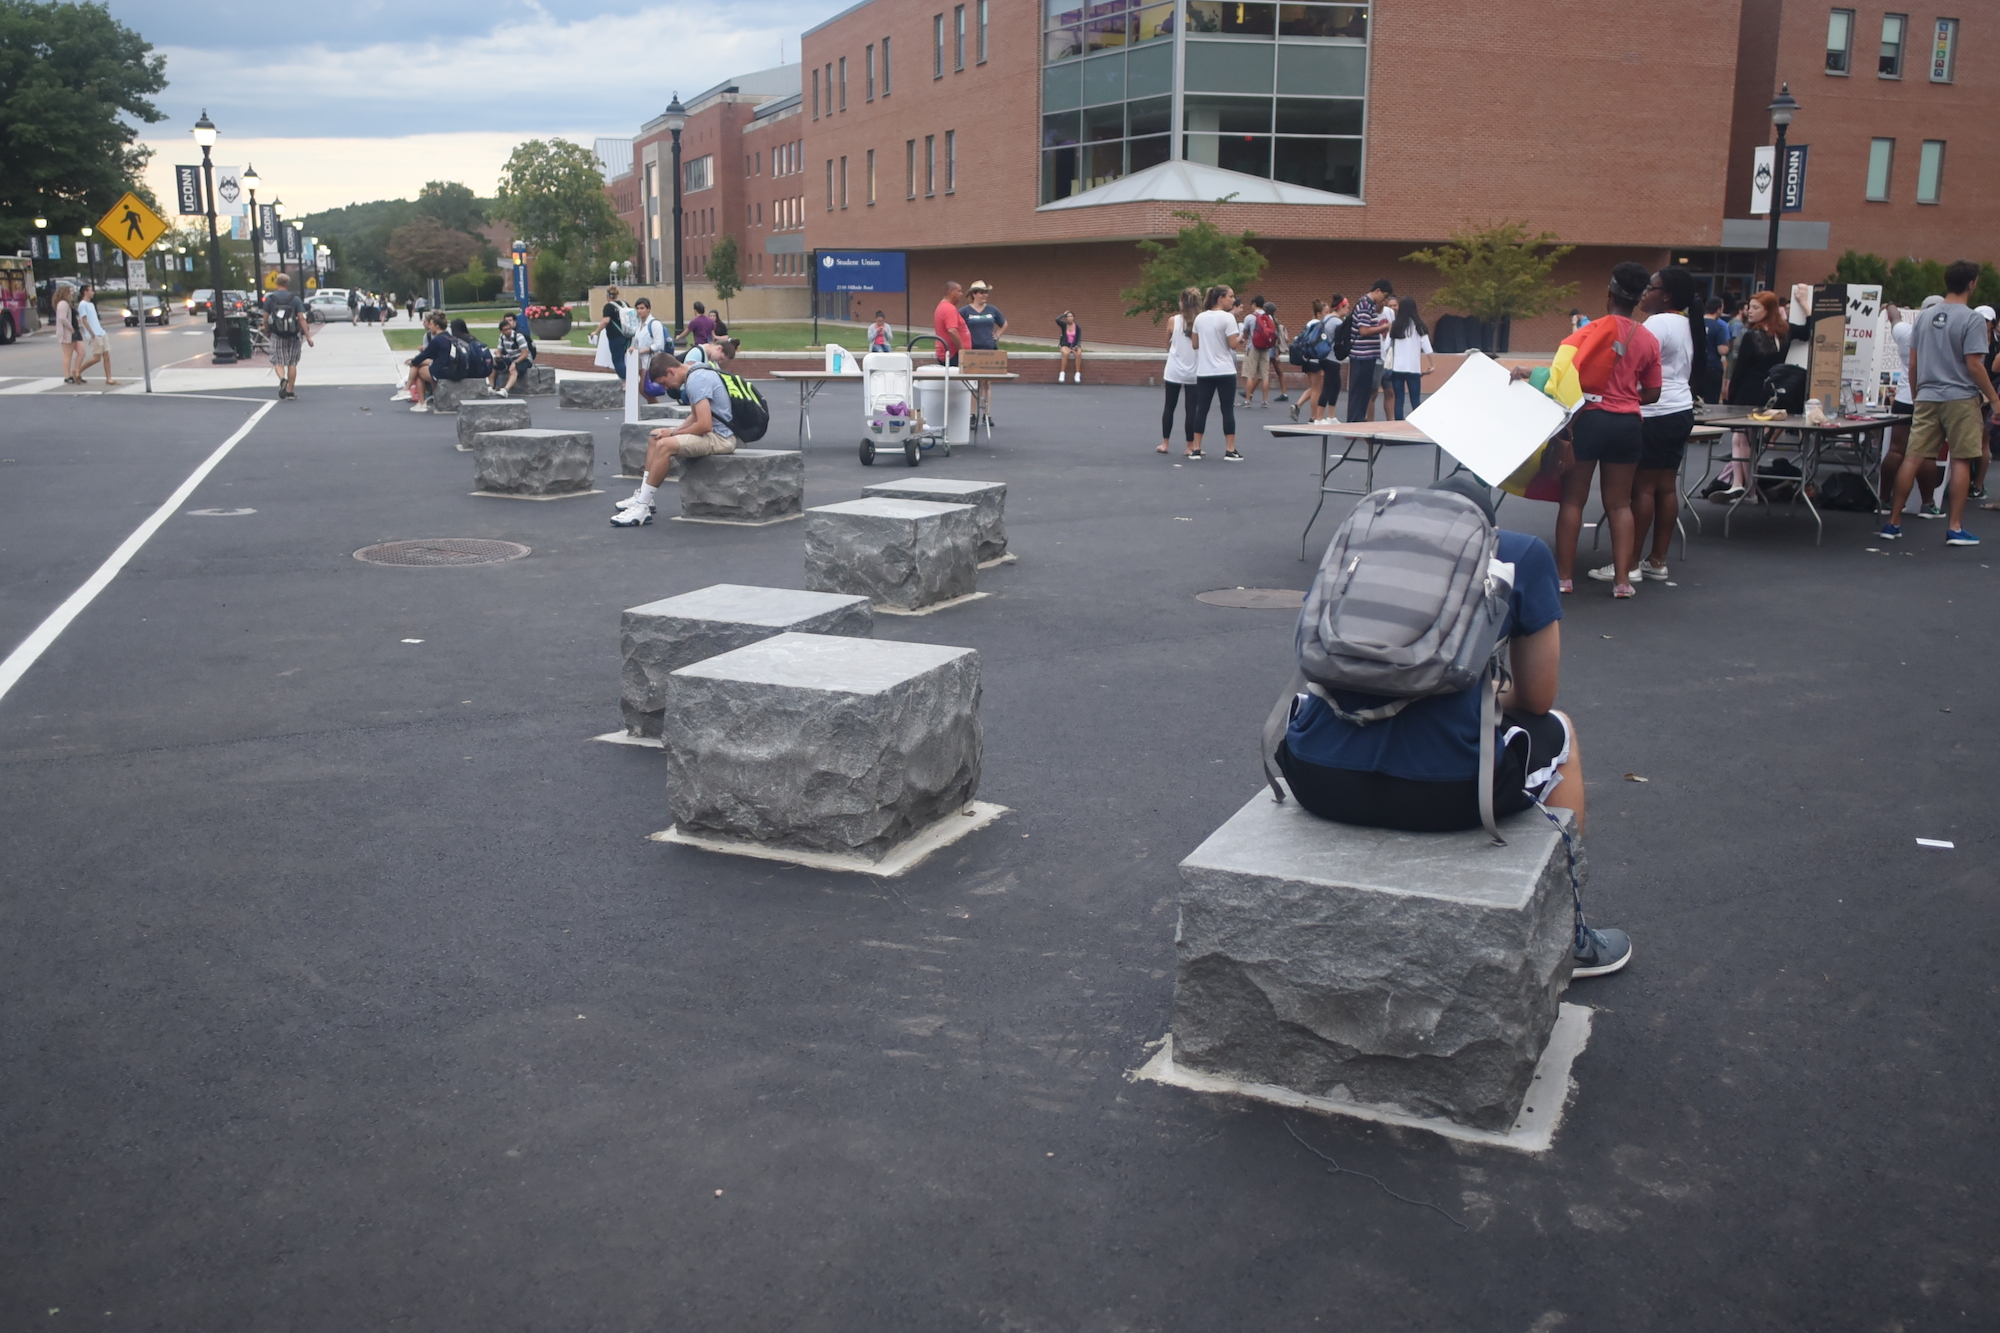 The sidewalk area near the Student Union is now concrete instead of brick, due to the infrastructure completed over the summer. (Zhelun Lang/The Daily Campus)